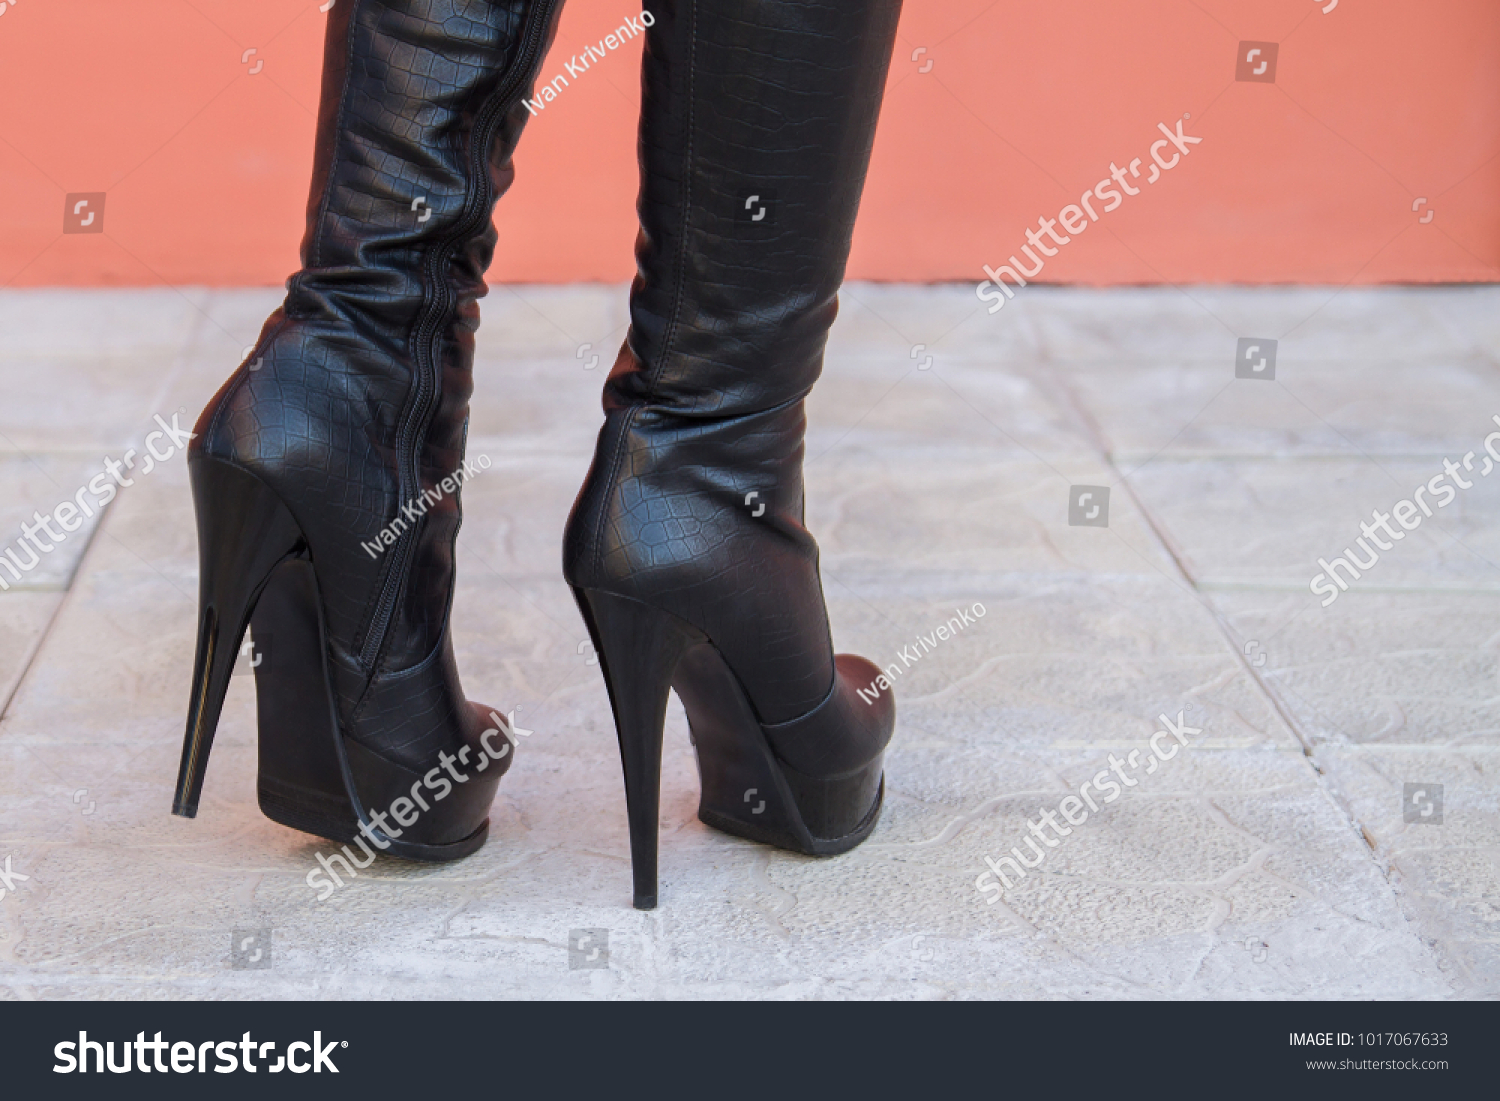 Fetish hot women heels